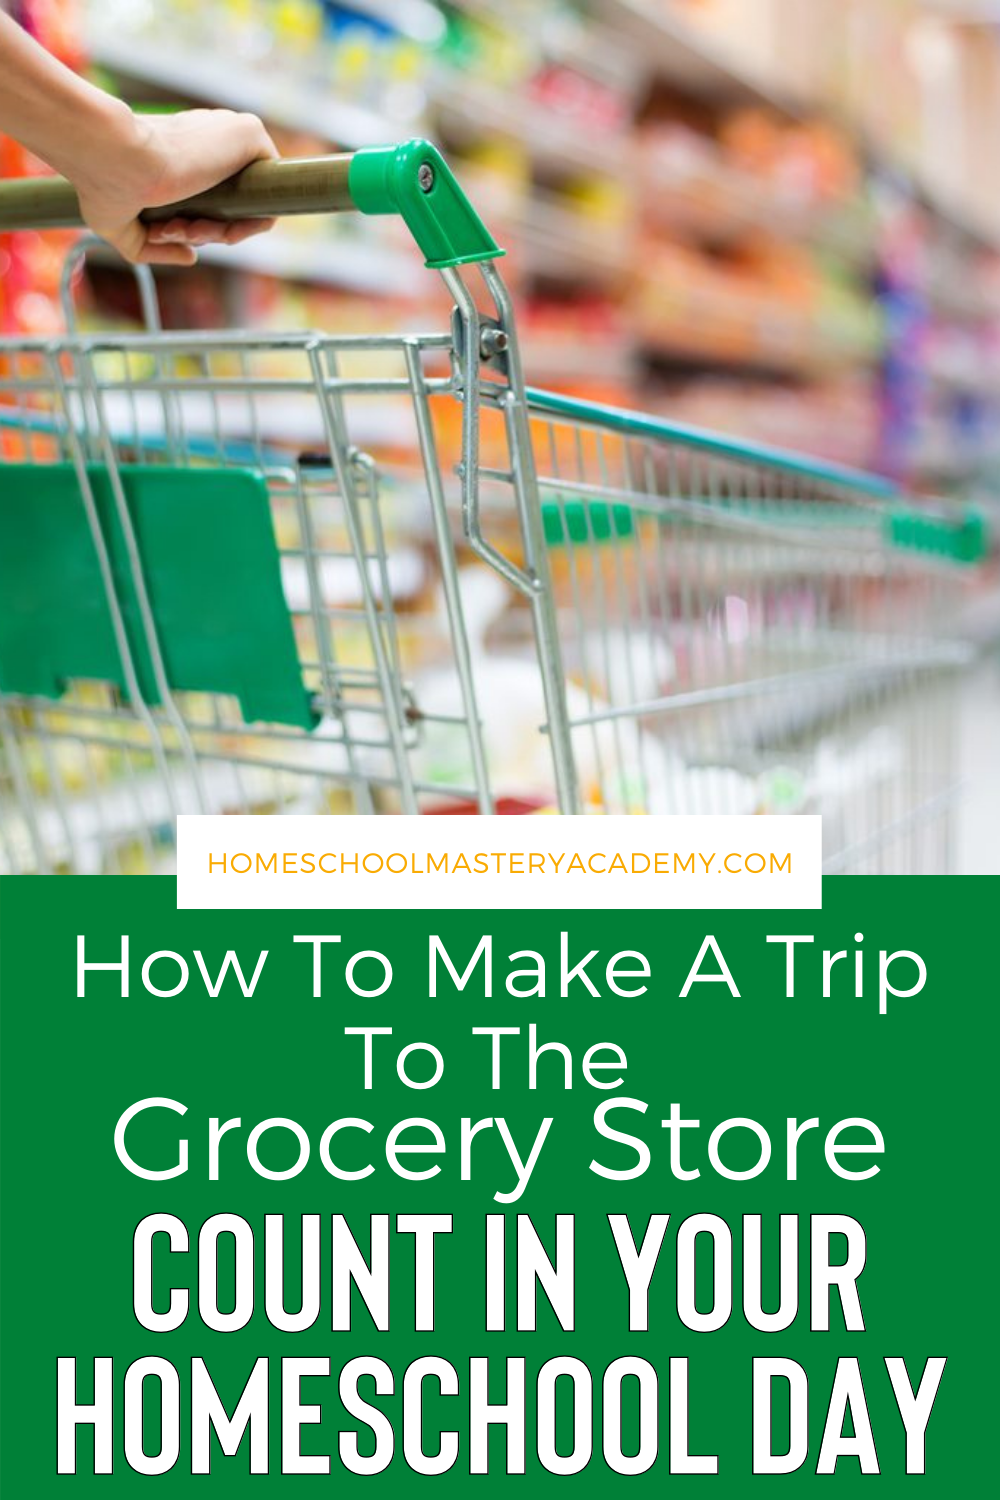 A trip to the grocery store can be much more than the just restocking on essentials. Here is how you can make it count in your homeschool day! #homeschool #lifeskills #homeschooltips #homeschooling